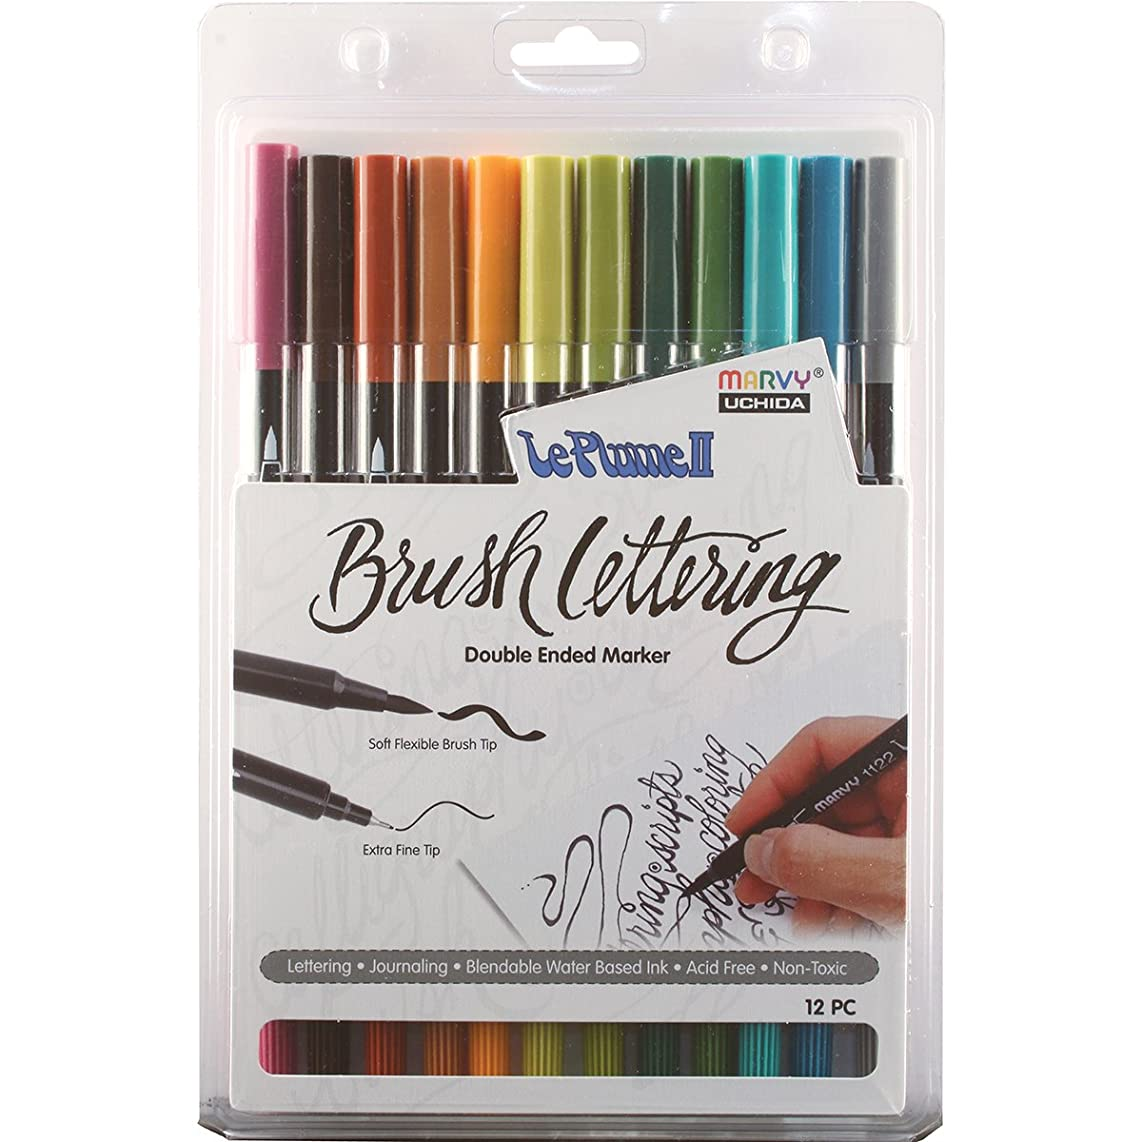 UCHIDA Natural Colored 12 Piece Brush Lettering Marker Set